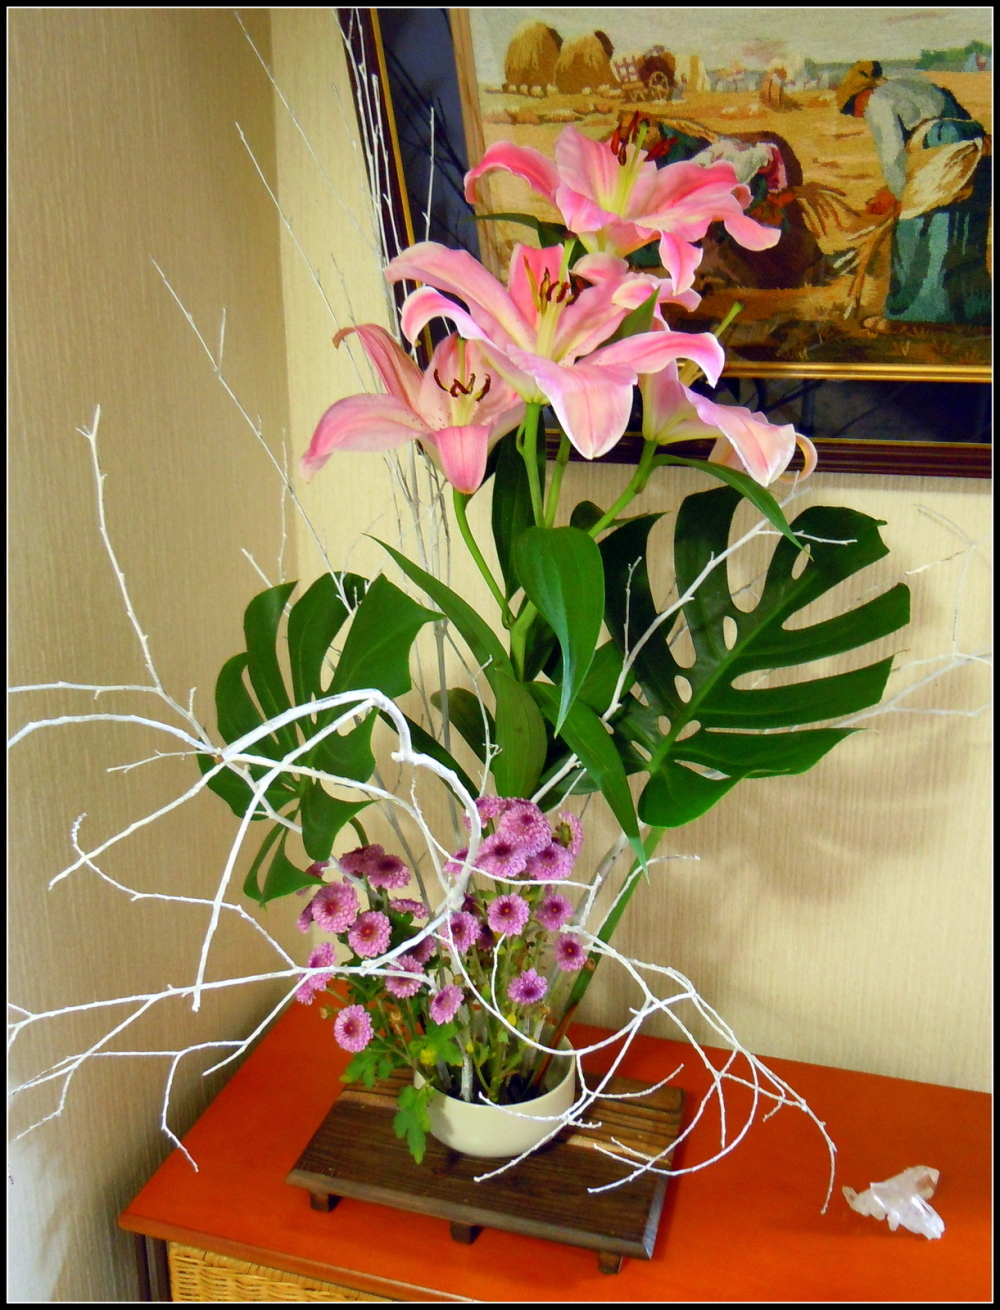 My ikebana with orietal lily and monstera leaves